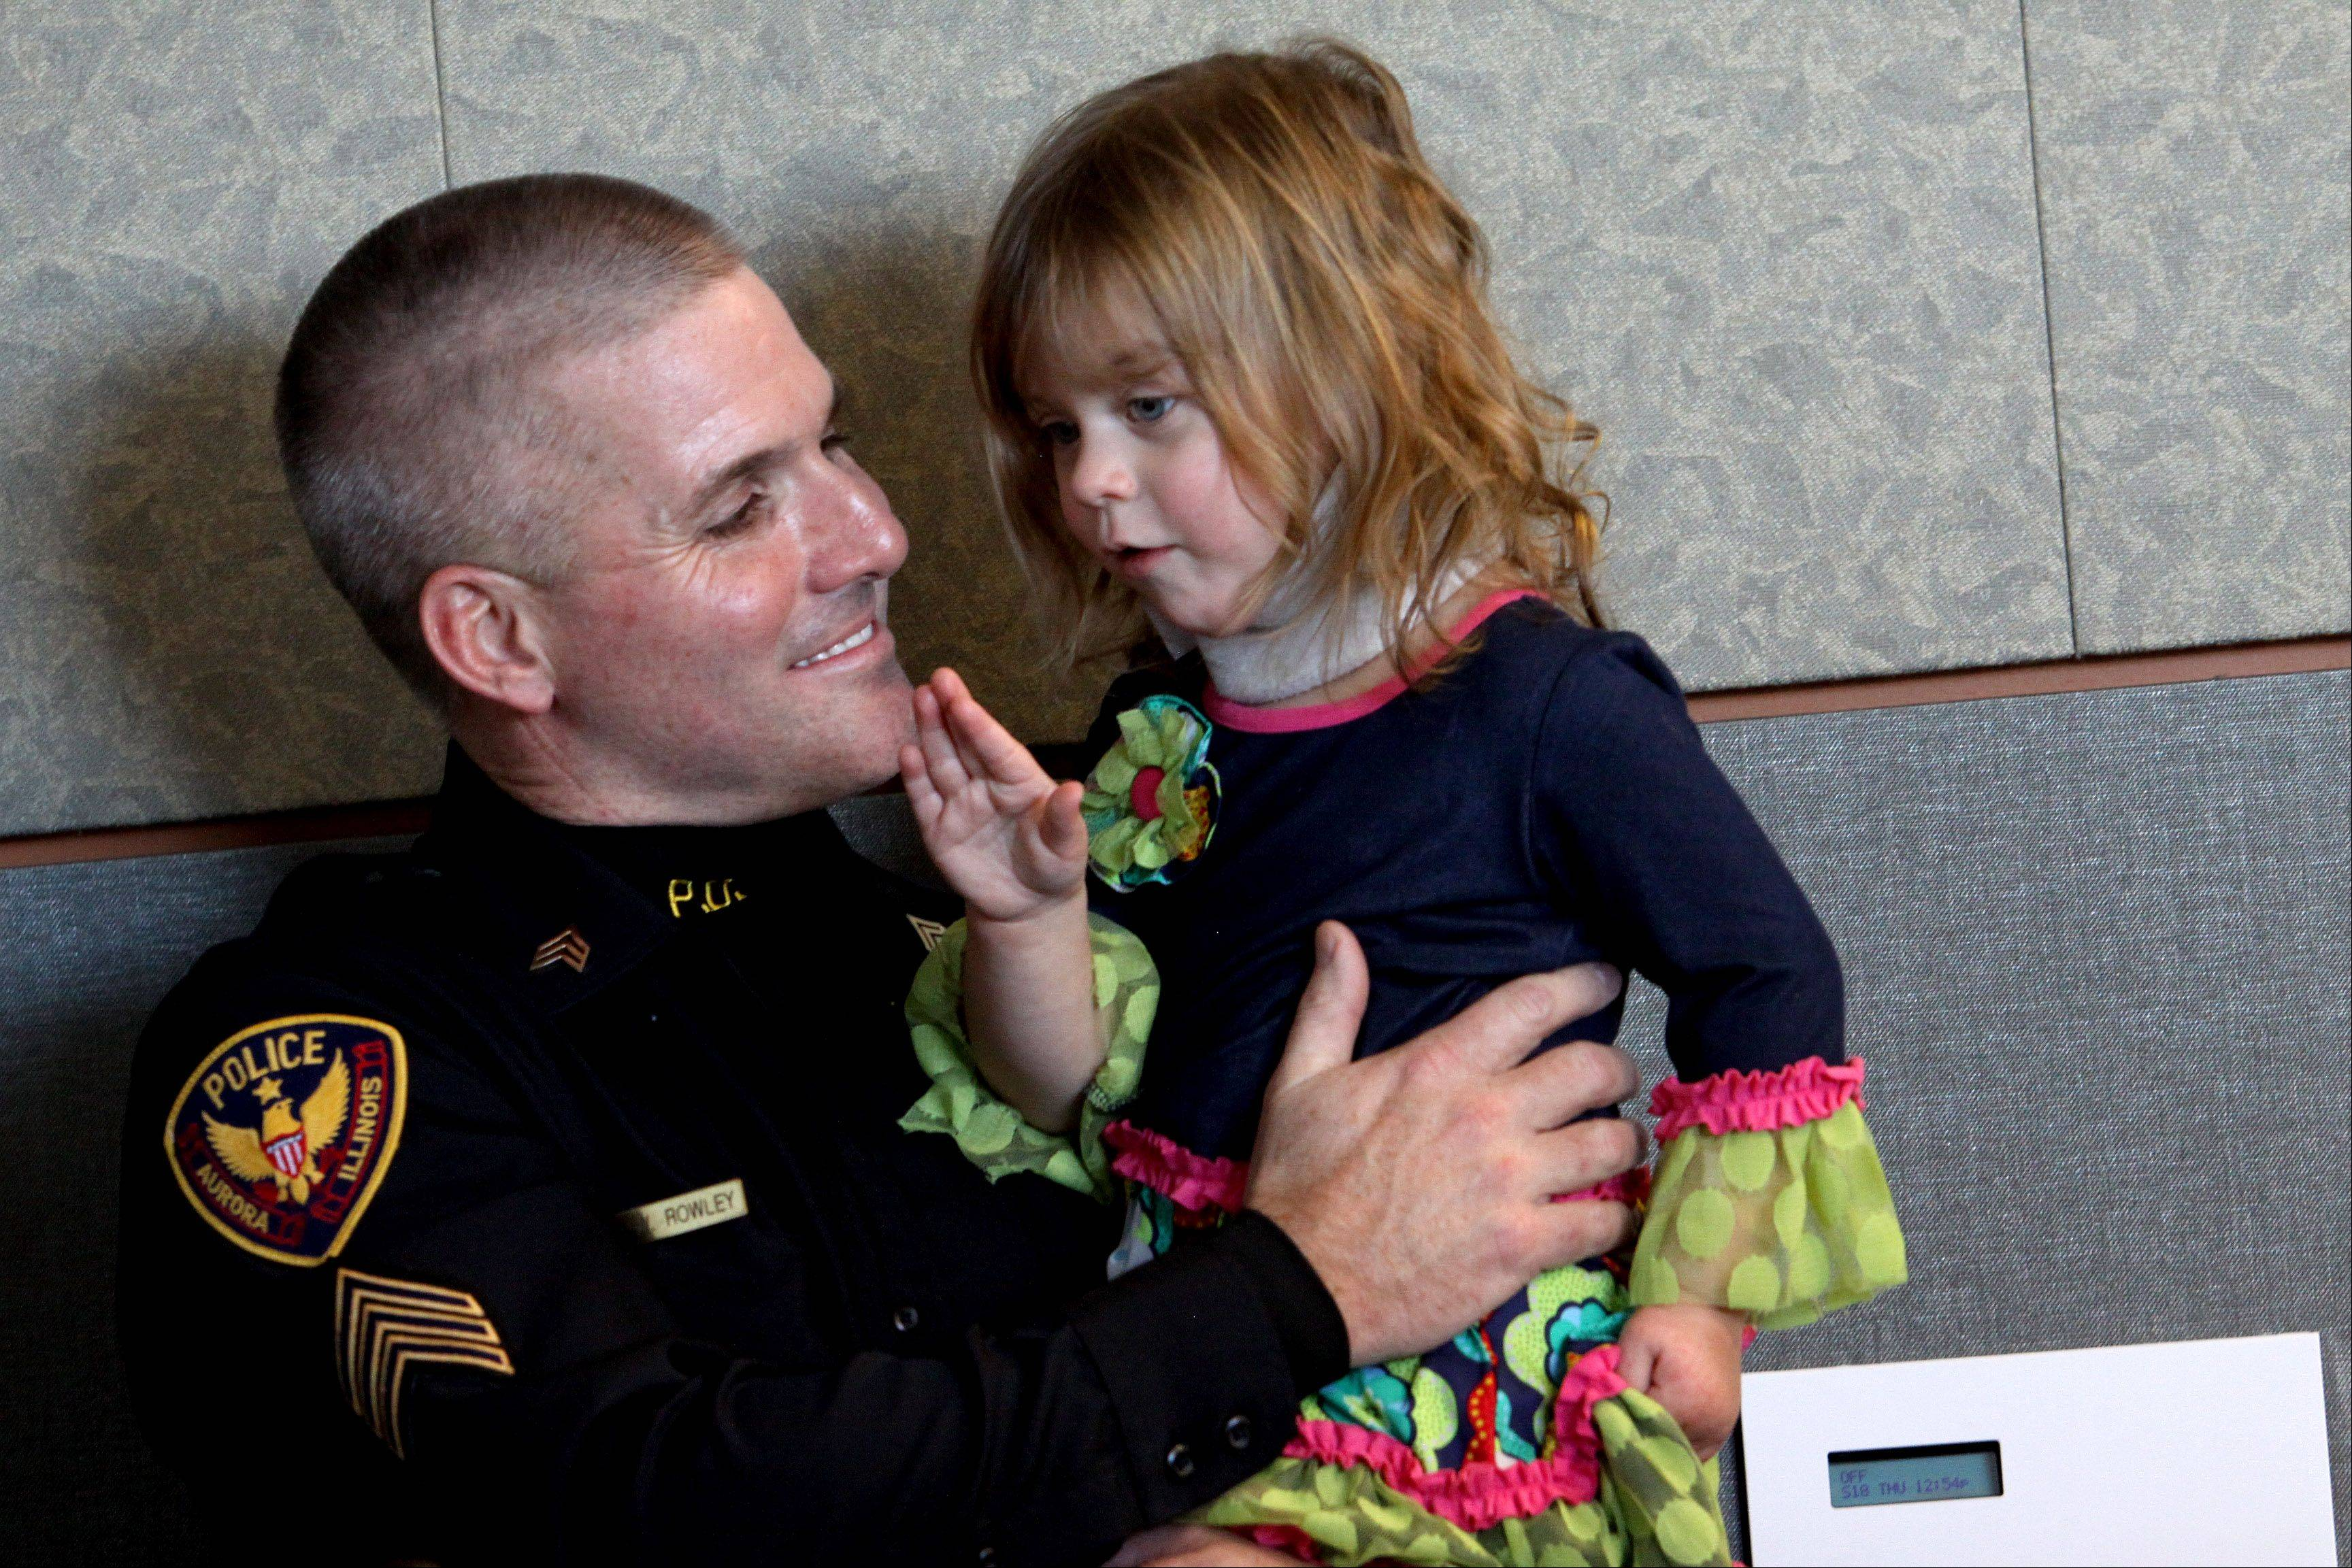 Sgt. Bill Rowley holds Abigail Schmidt, 2, at the Aurora Police Station on Thursday. He saved her life in October when he was off-duty and both their families were heading toward a pumpkin patch near Joliet. The vehicle in which the little girl was riding was struck by another car and she likely would have died if he had not give her CPR.